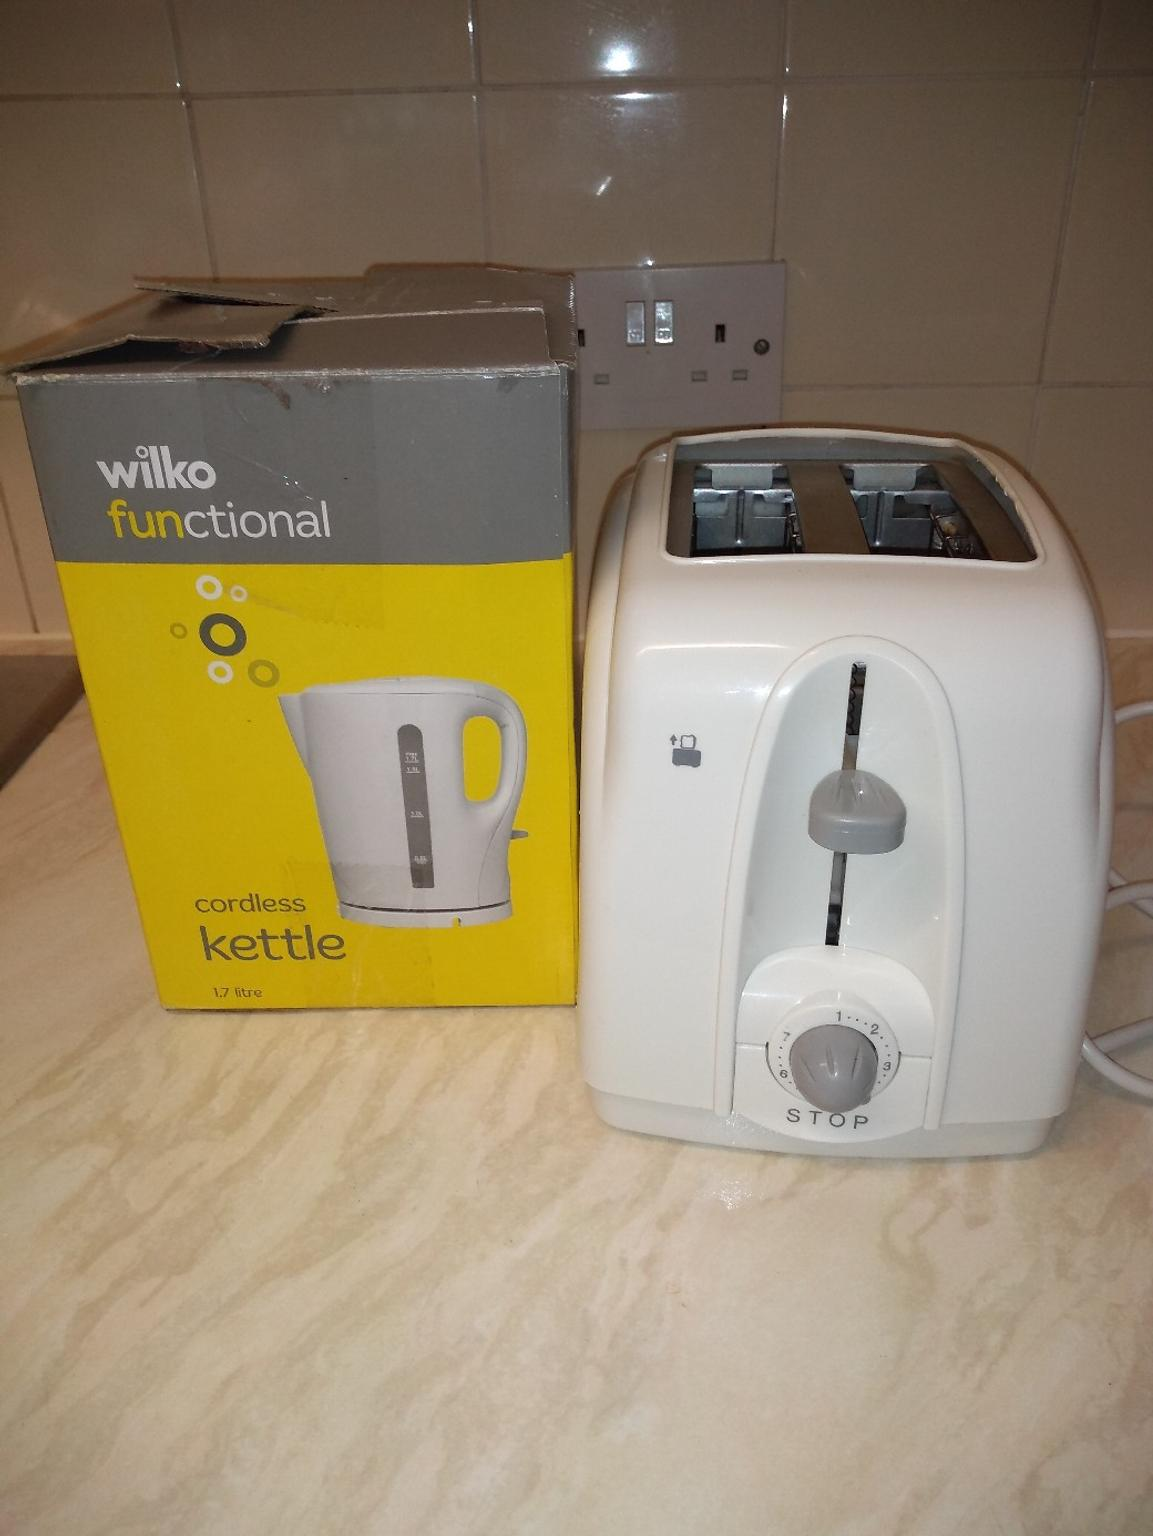 Wilko kettle + toaster in CW1 Crewe for